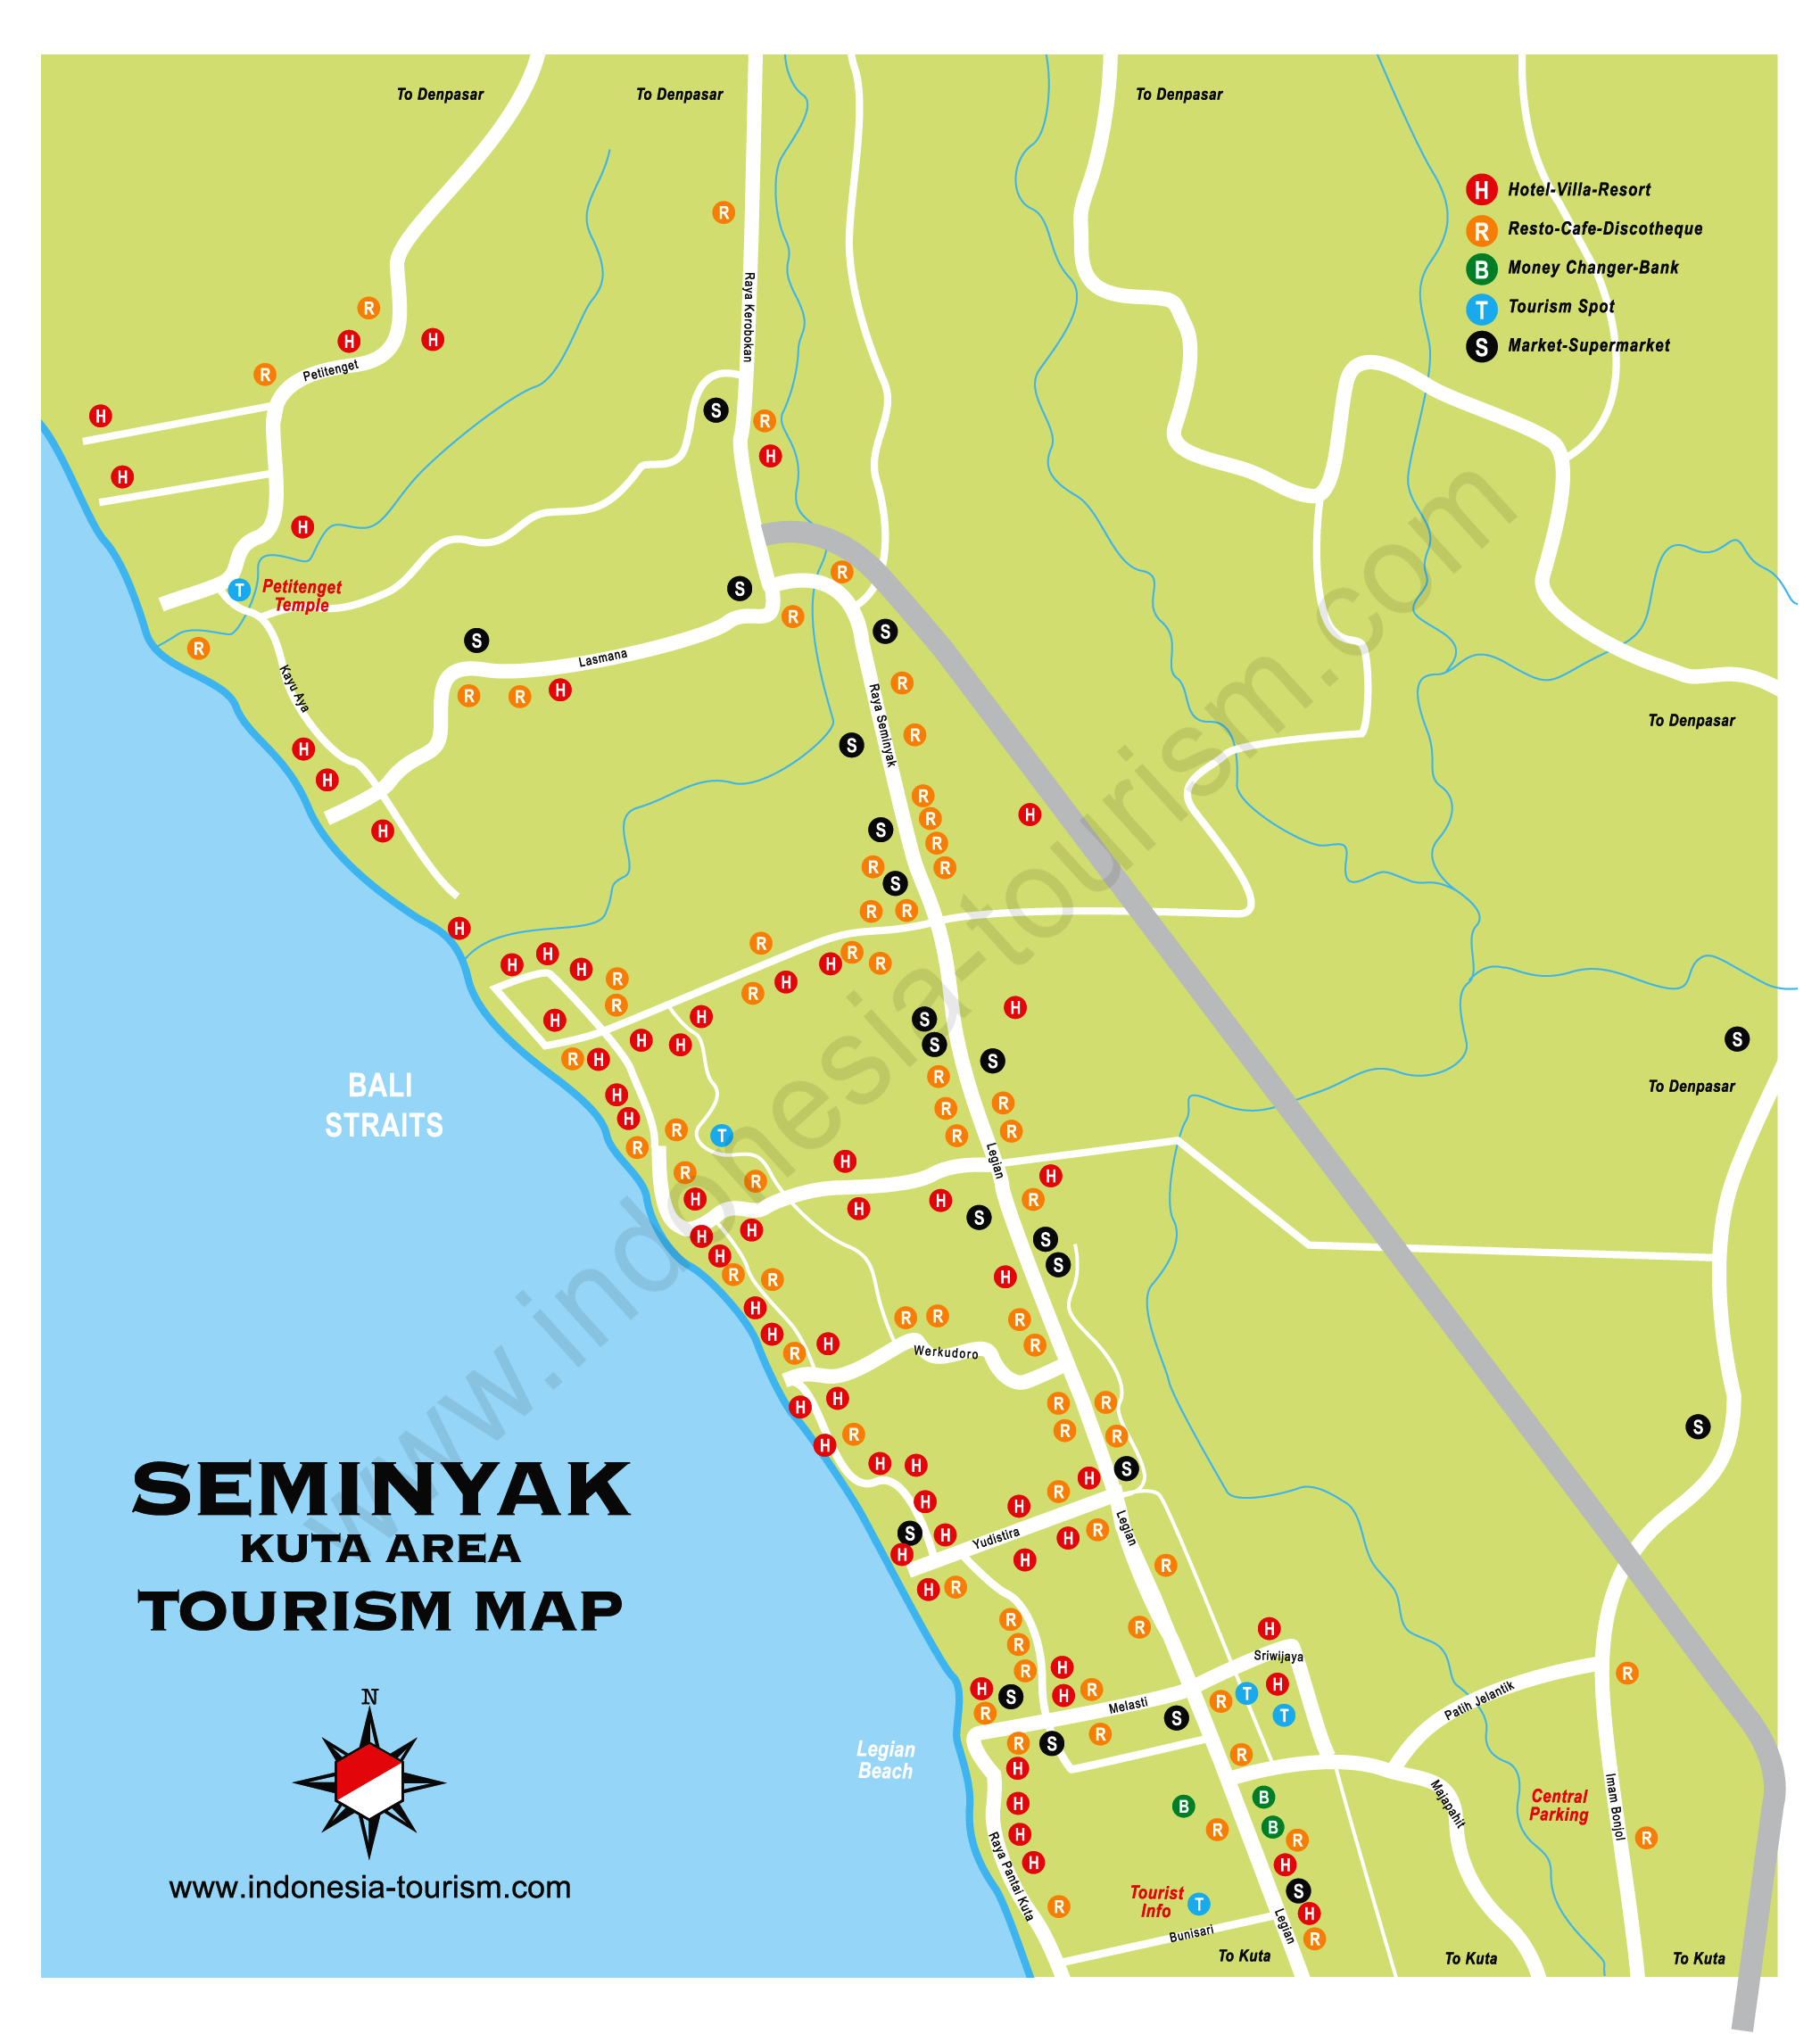 Kuta and Seminyak Bali Map Bali Island Indonesia Tourism Maps – Indonesia Tourist Attractions Map